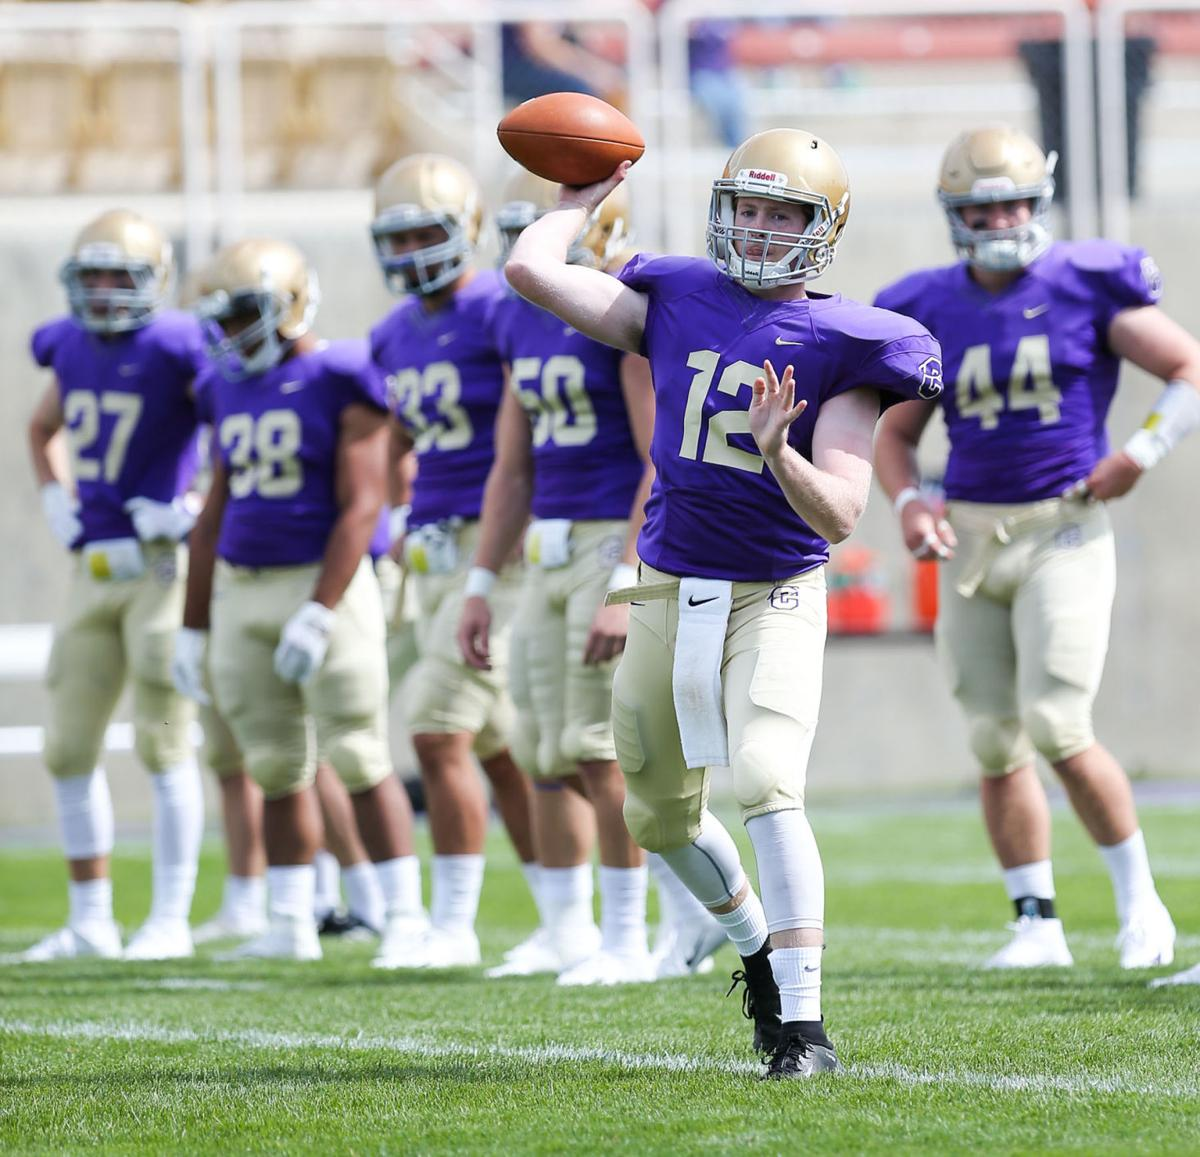 Carroll College Football Looking To Rebuild Team Through